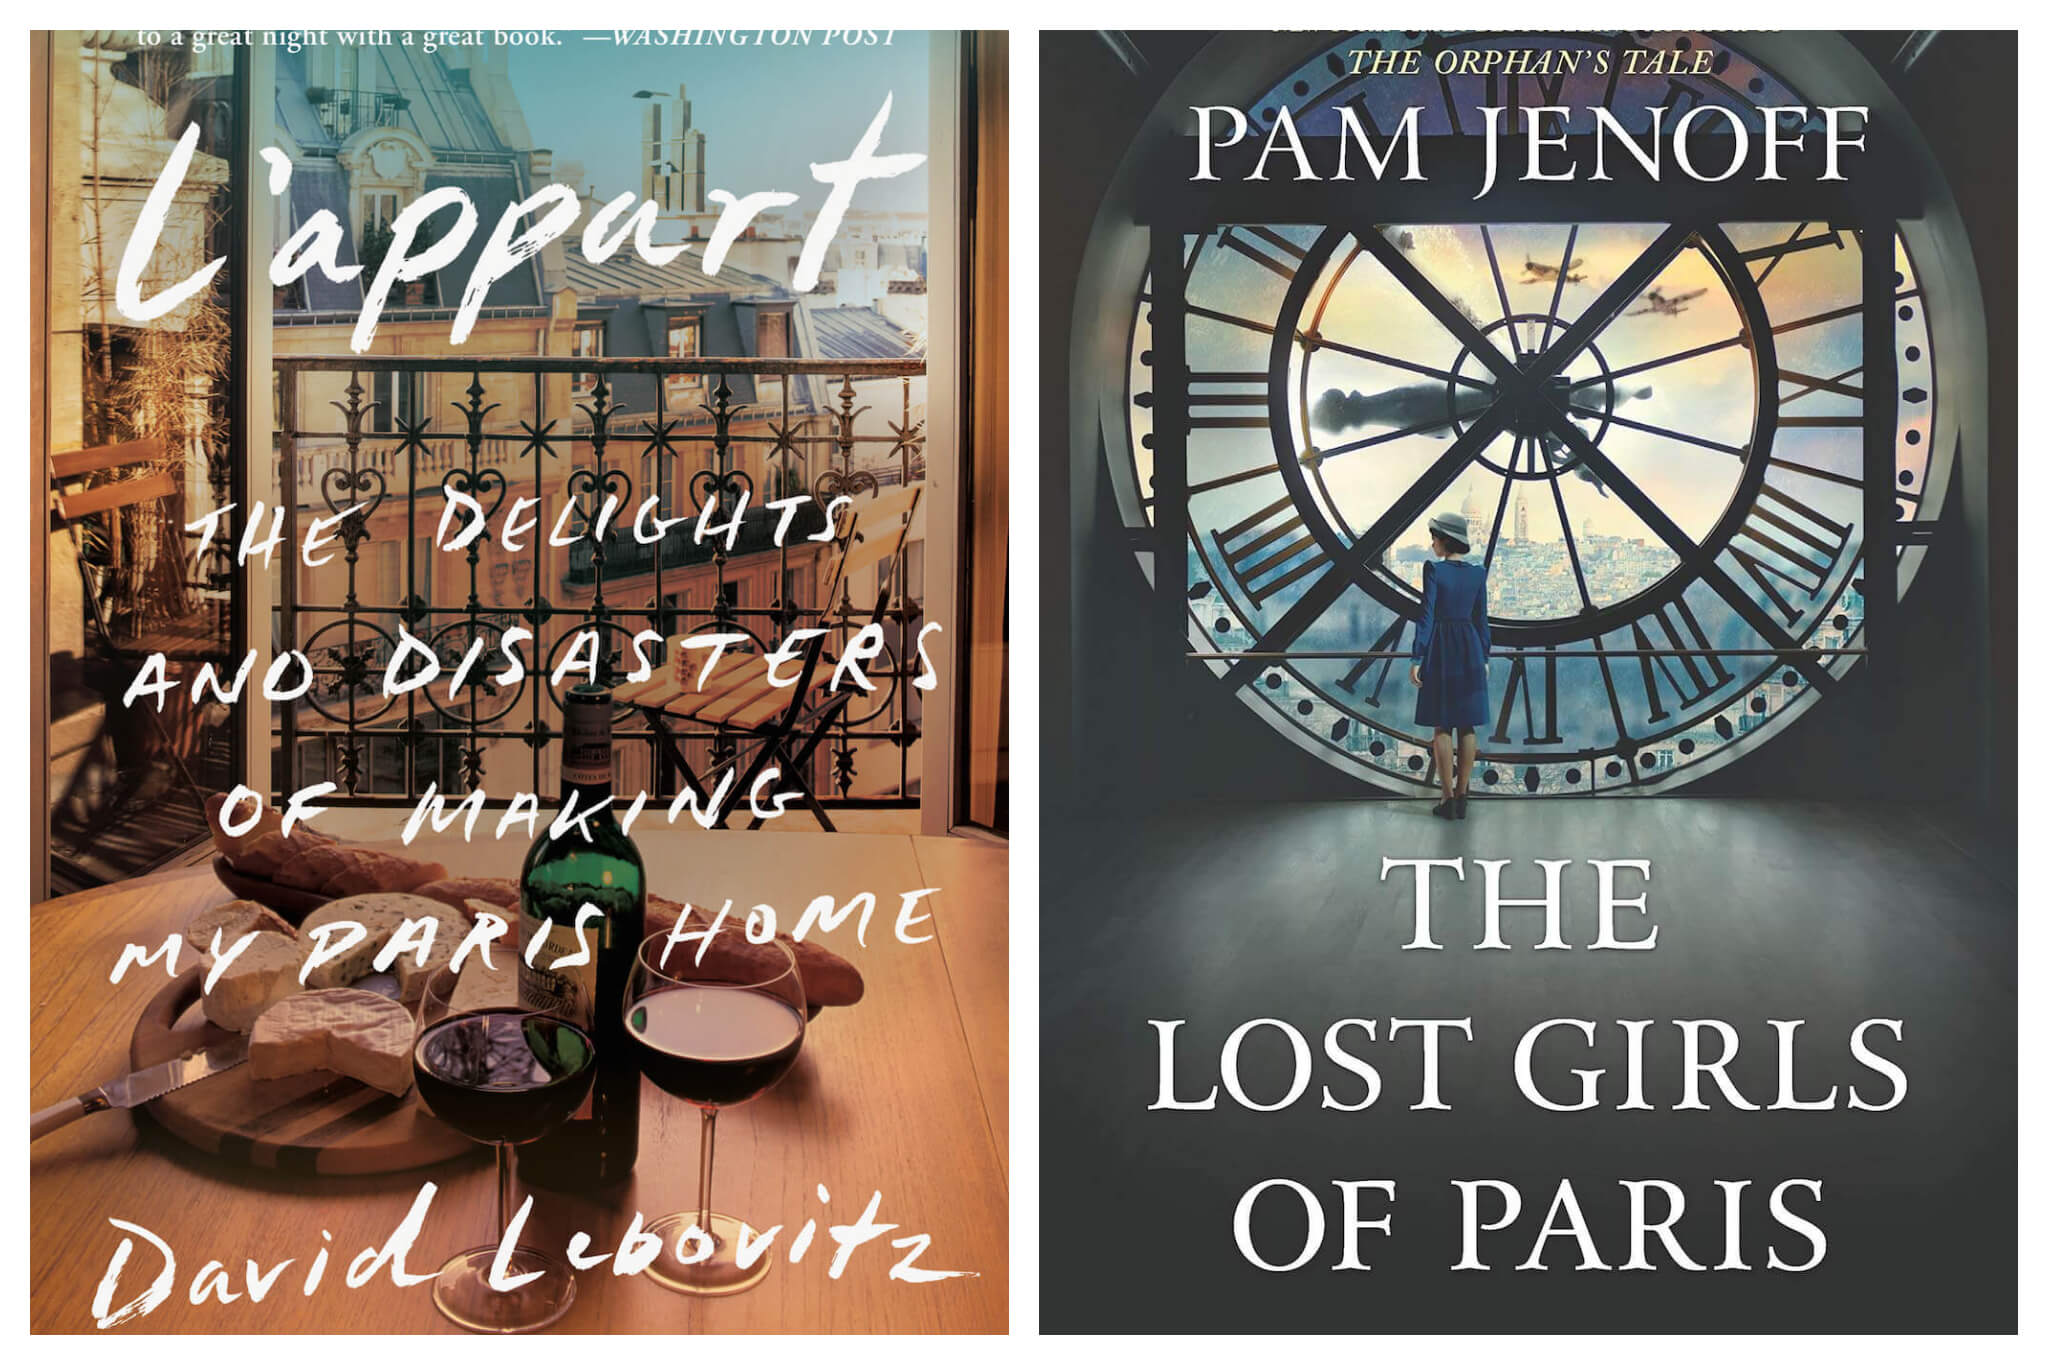 Left: The cover of David Lebovitz's new book, L'appart: The Delights and Disasters of Making Paris Home, Right: The cover of Pam Jenoff's book, The Lost Girls of Paris